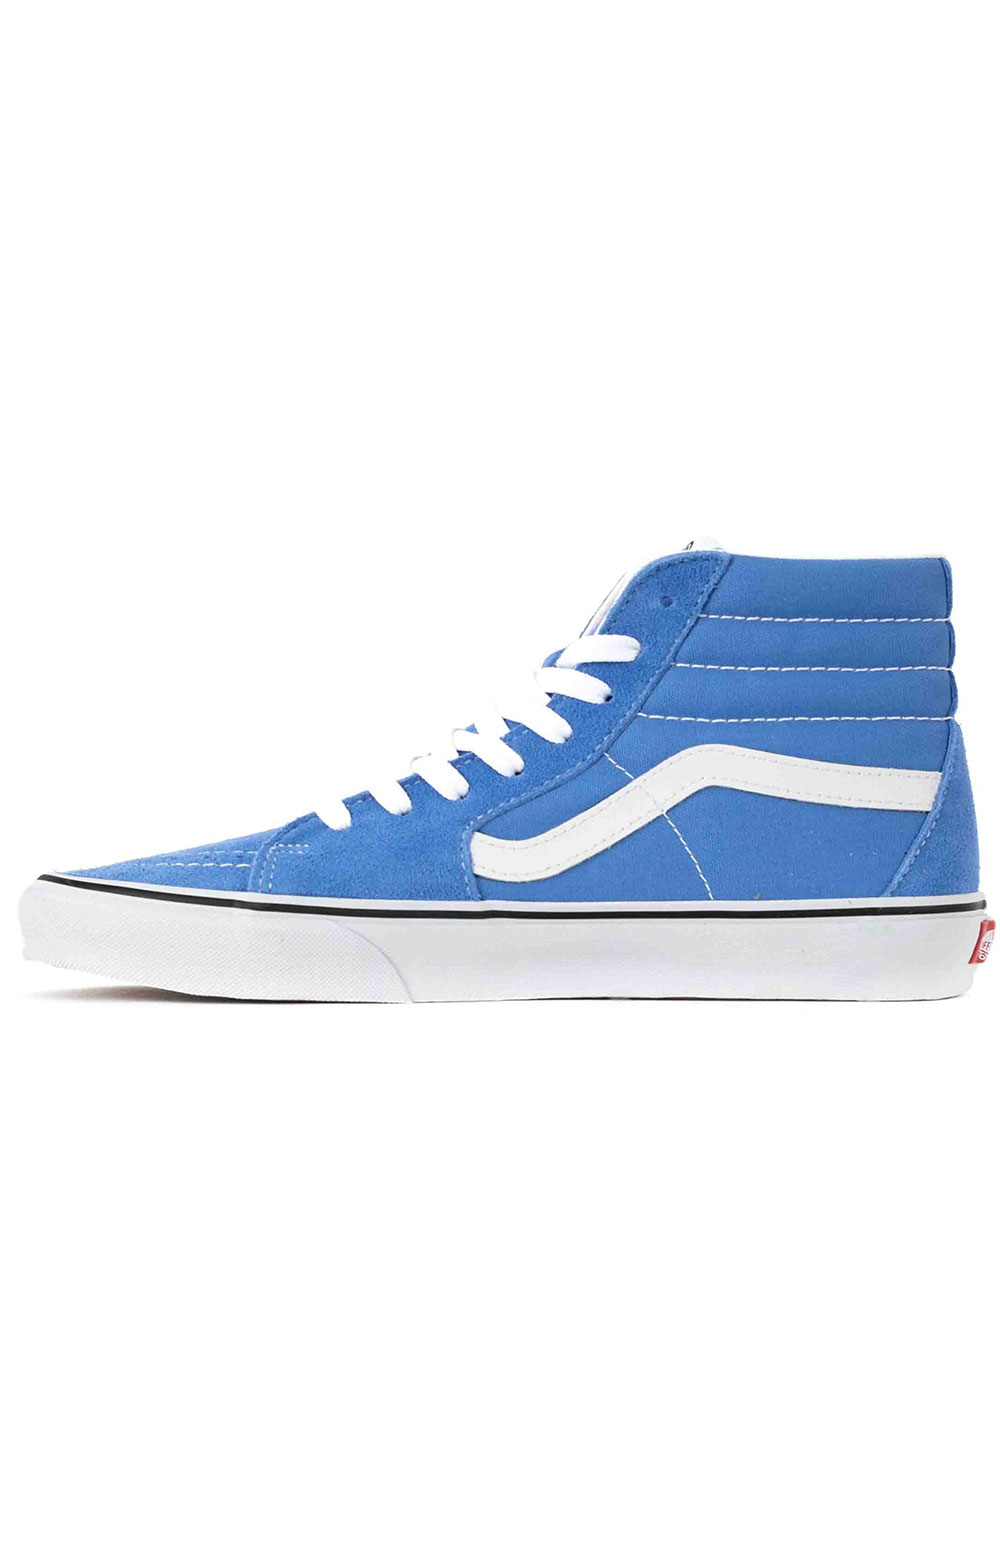 (U3C1UJ) Sk8-Hi Shoes - Nebulas Blue  4